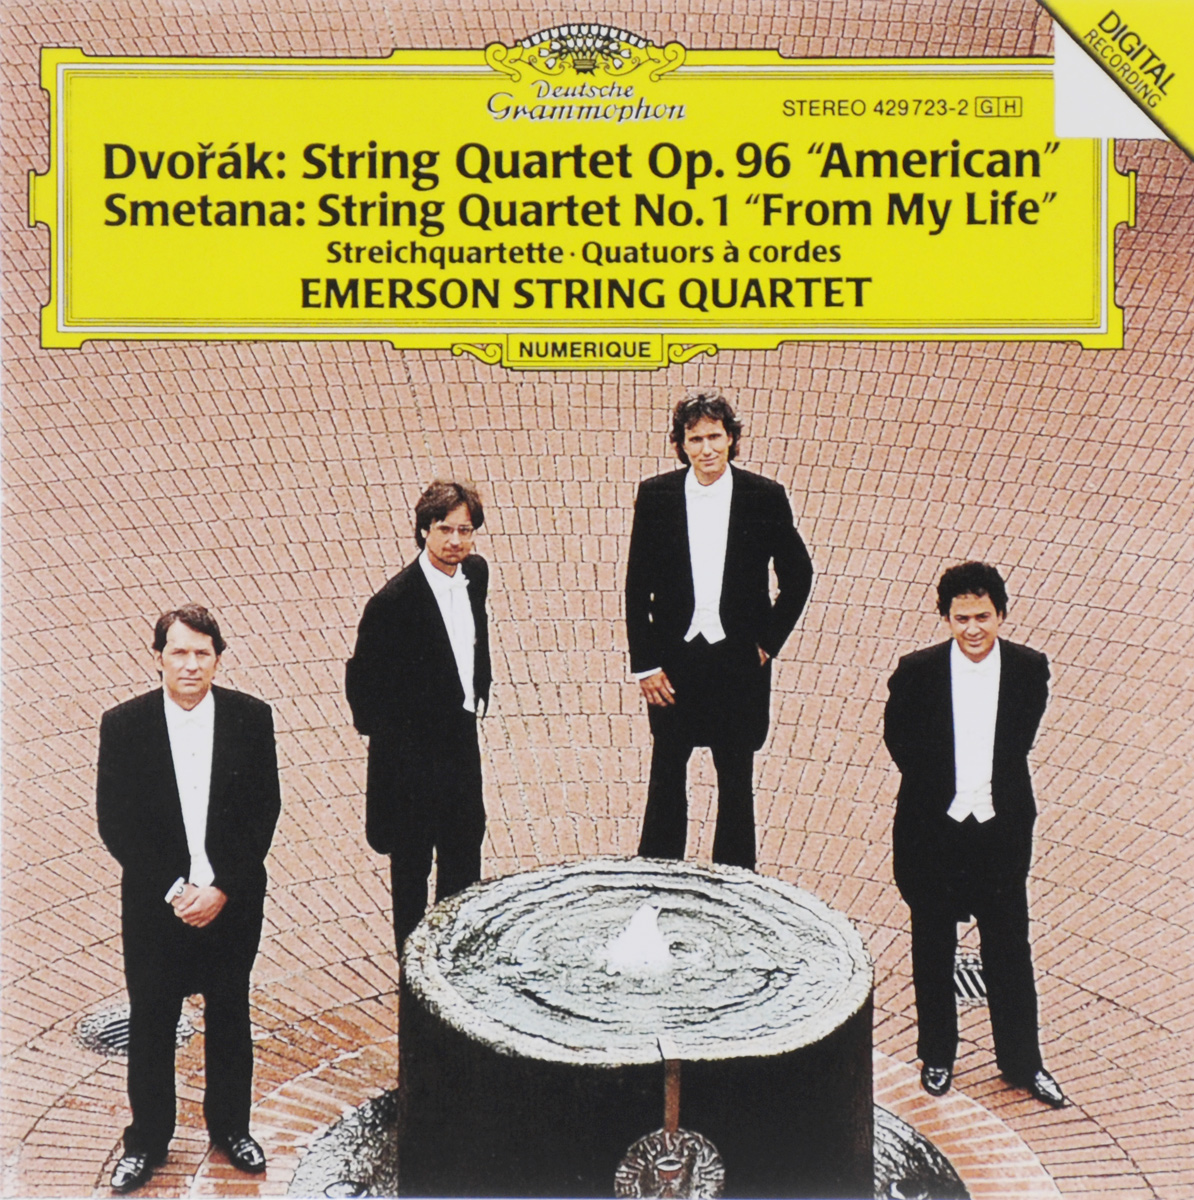 Emerson String Quartet Emerson String Quartet. String Quartet Op. 96 American / String Quartet No. 1 From My Life ящик рыболовный зимний технолит 40 х 19 х 29 см